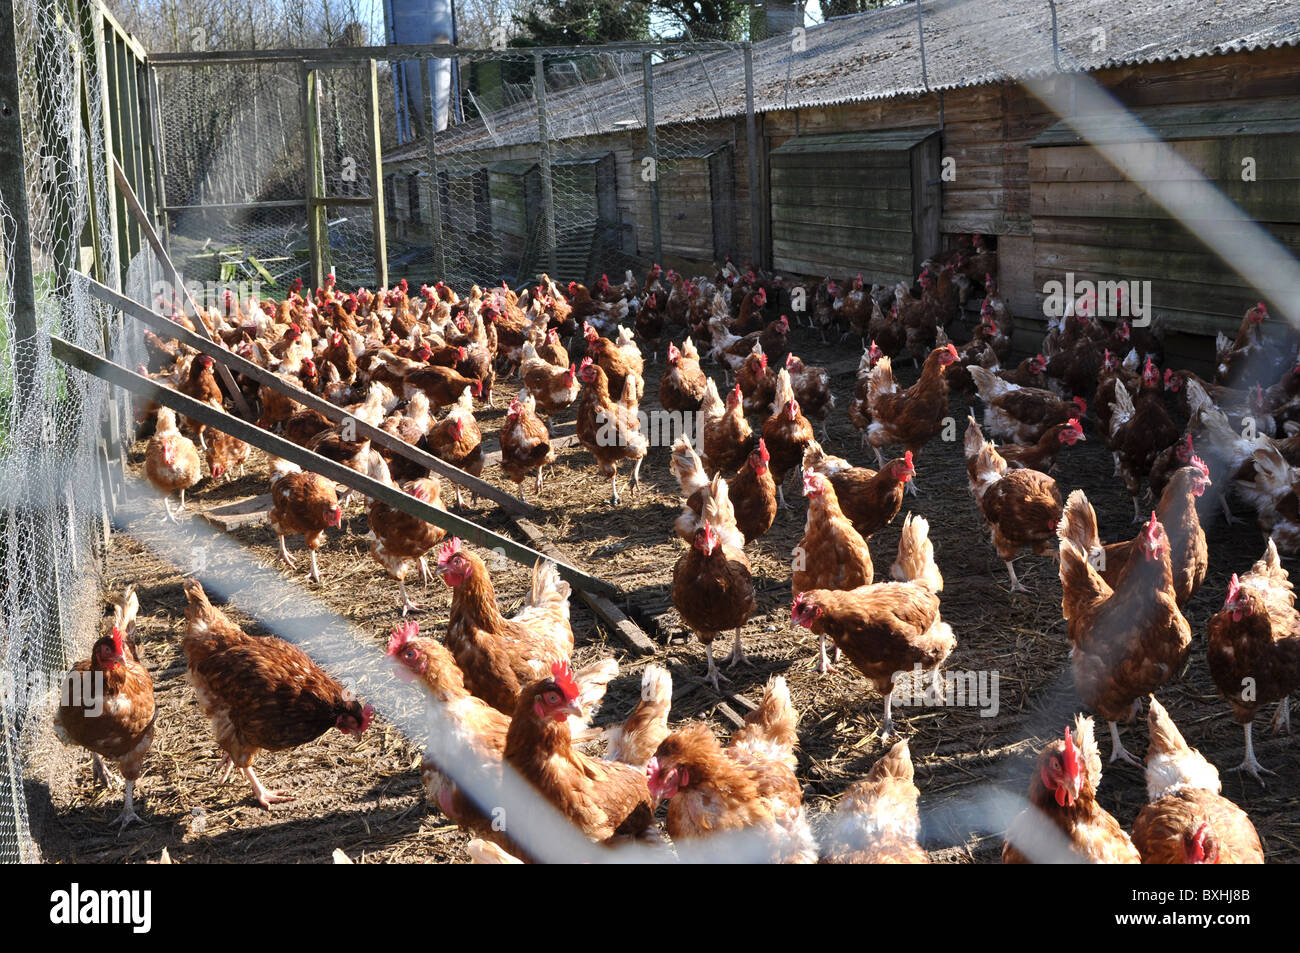 Intensive chicken farming - image taken outside of the coop - Stock Image